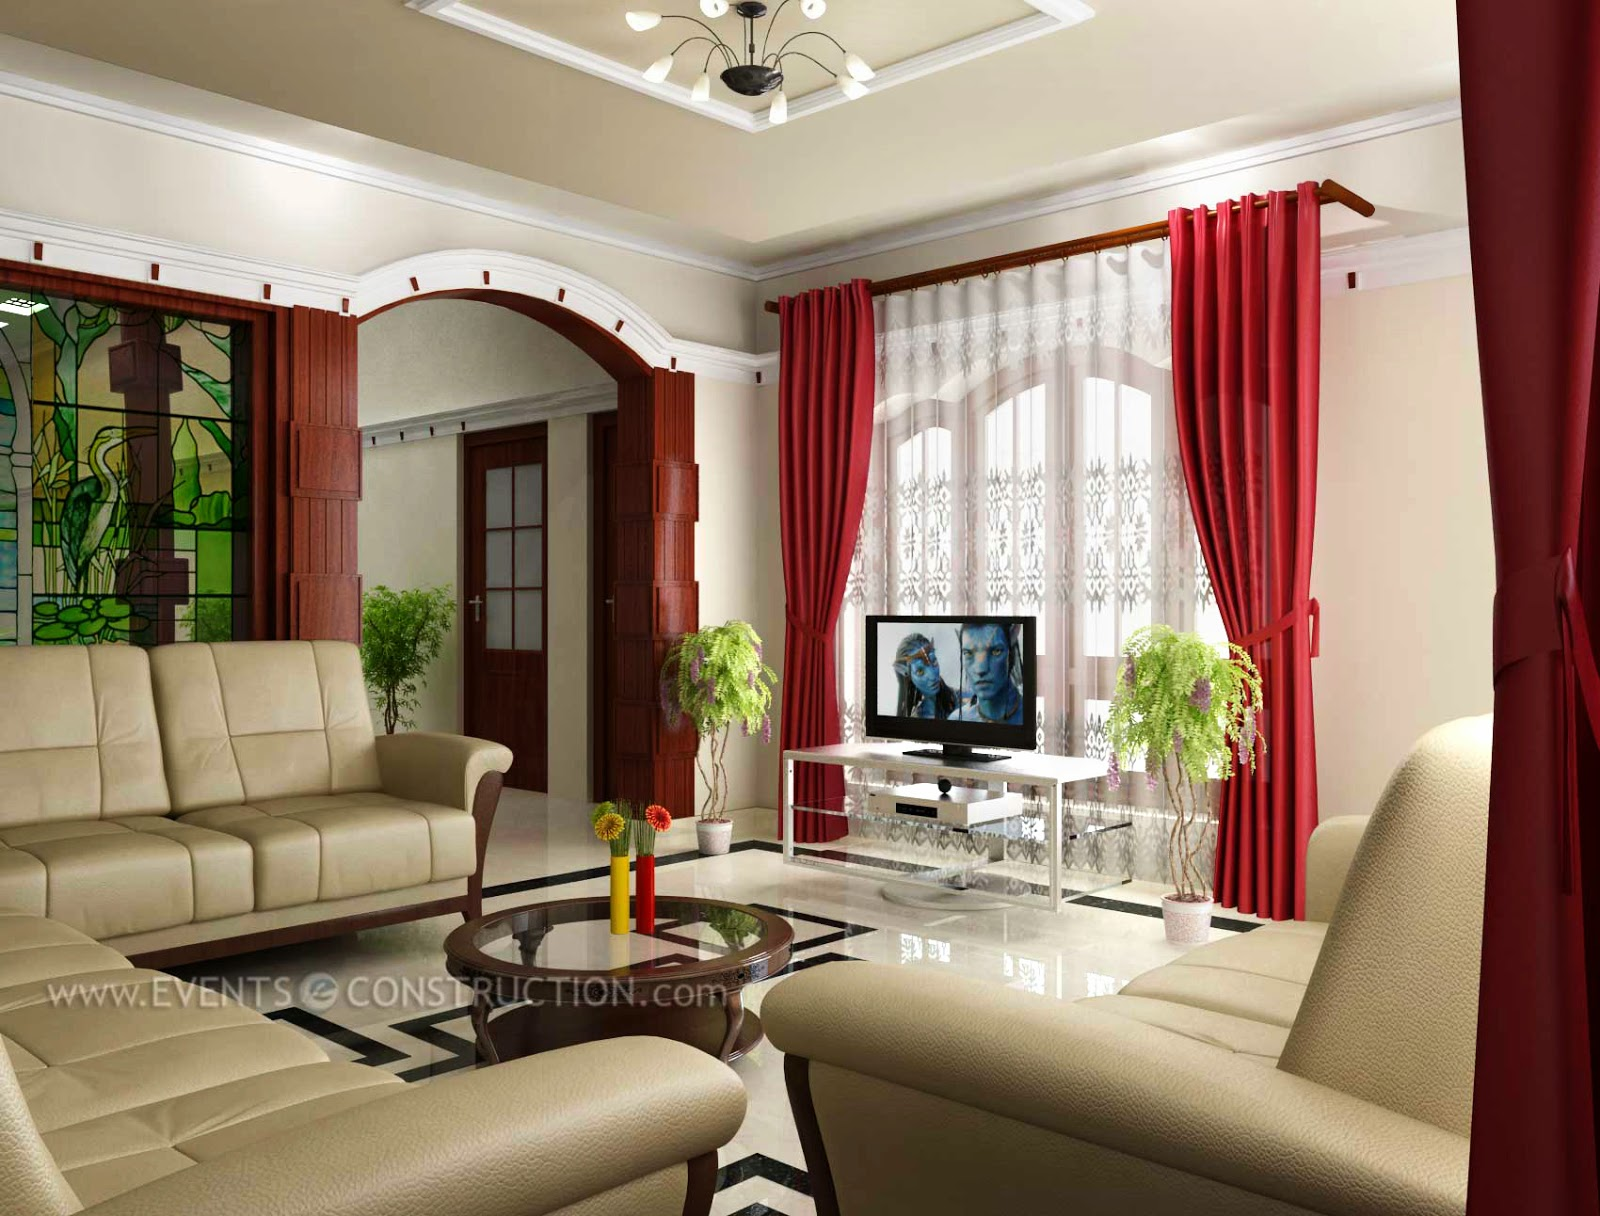 Evens construction pvt ltd modern kerala entertainment for Living room interior designs kerala